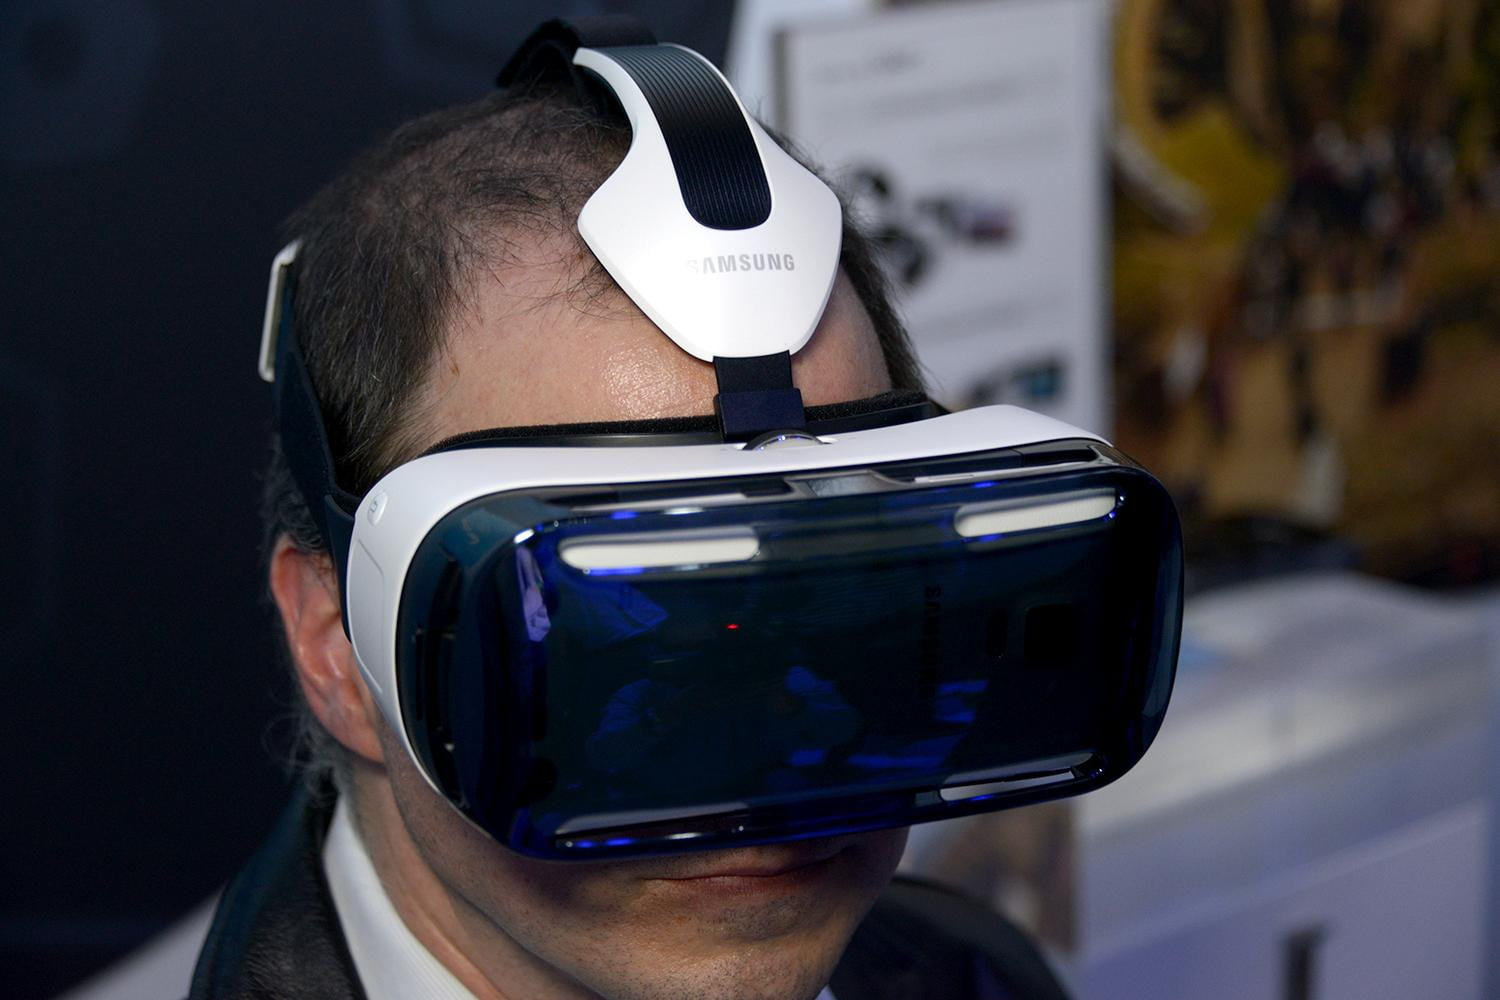 3 unanswered questions that will decide the fate of Samsung's Gear VR